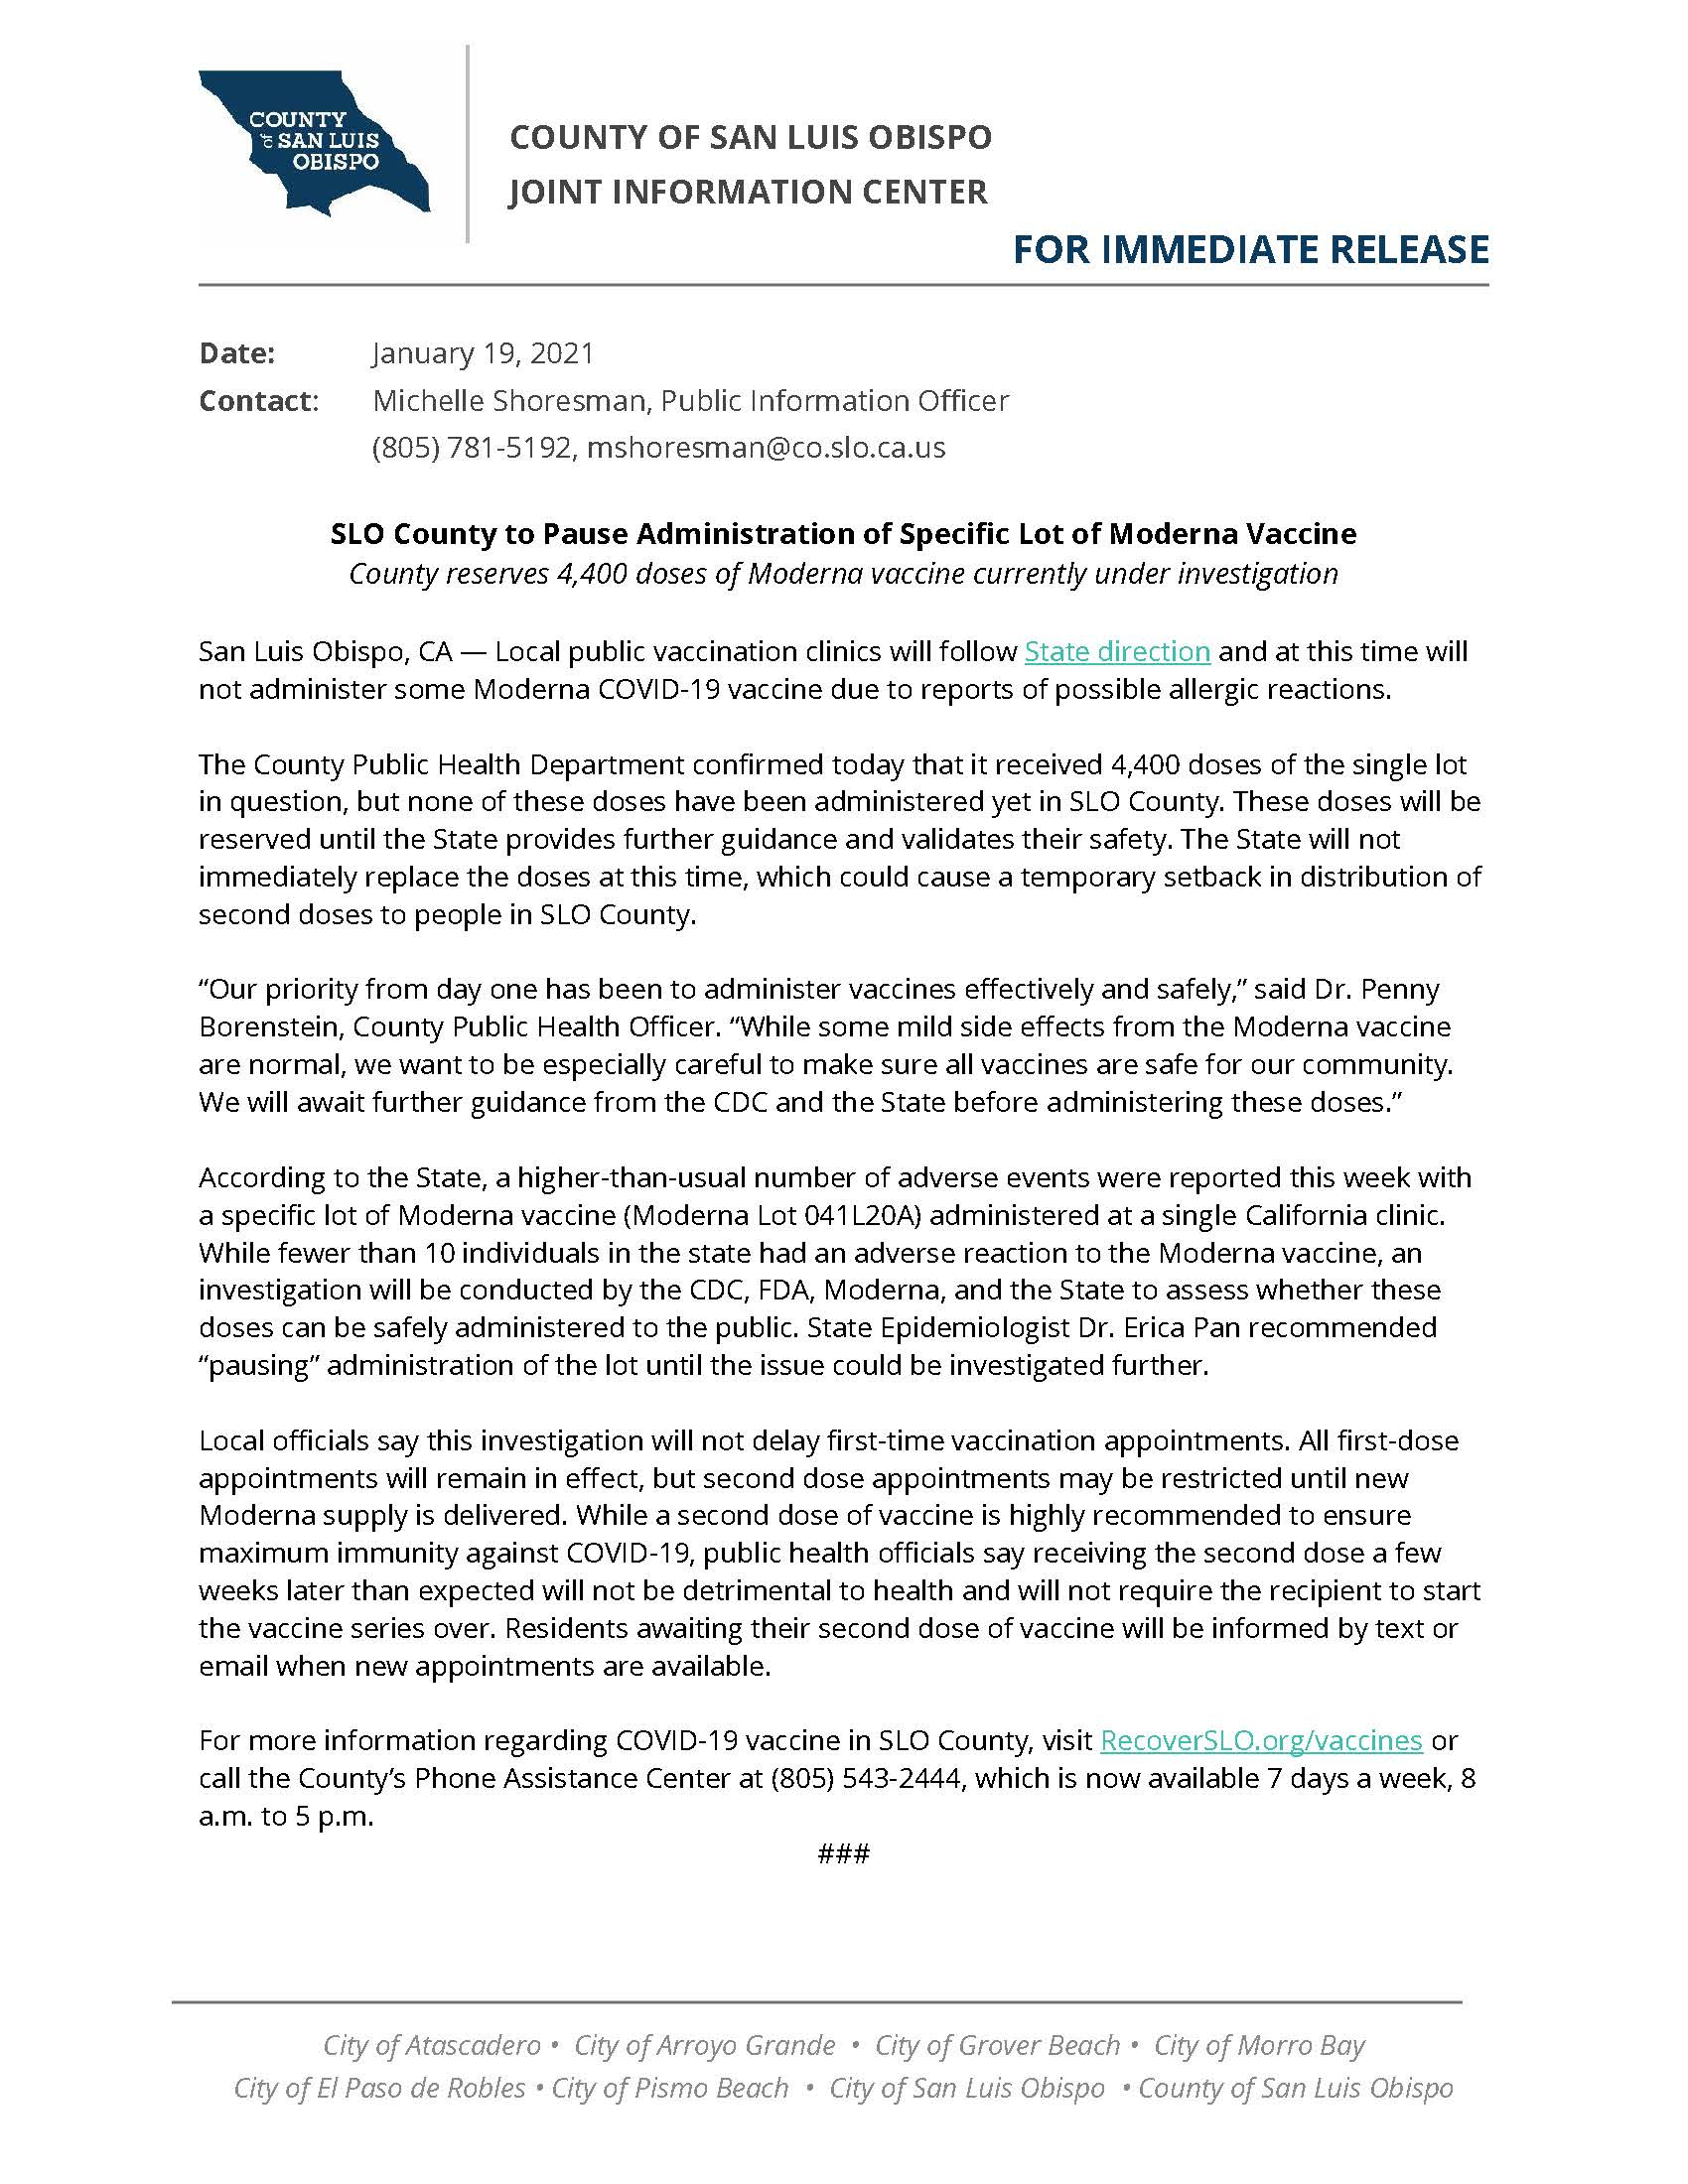 01-19-21 SLO County Will Not Administer Moderna Doses Pending Investigation